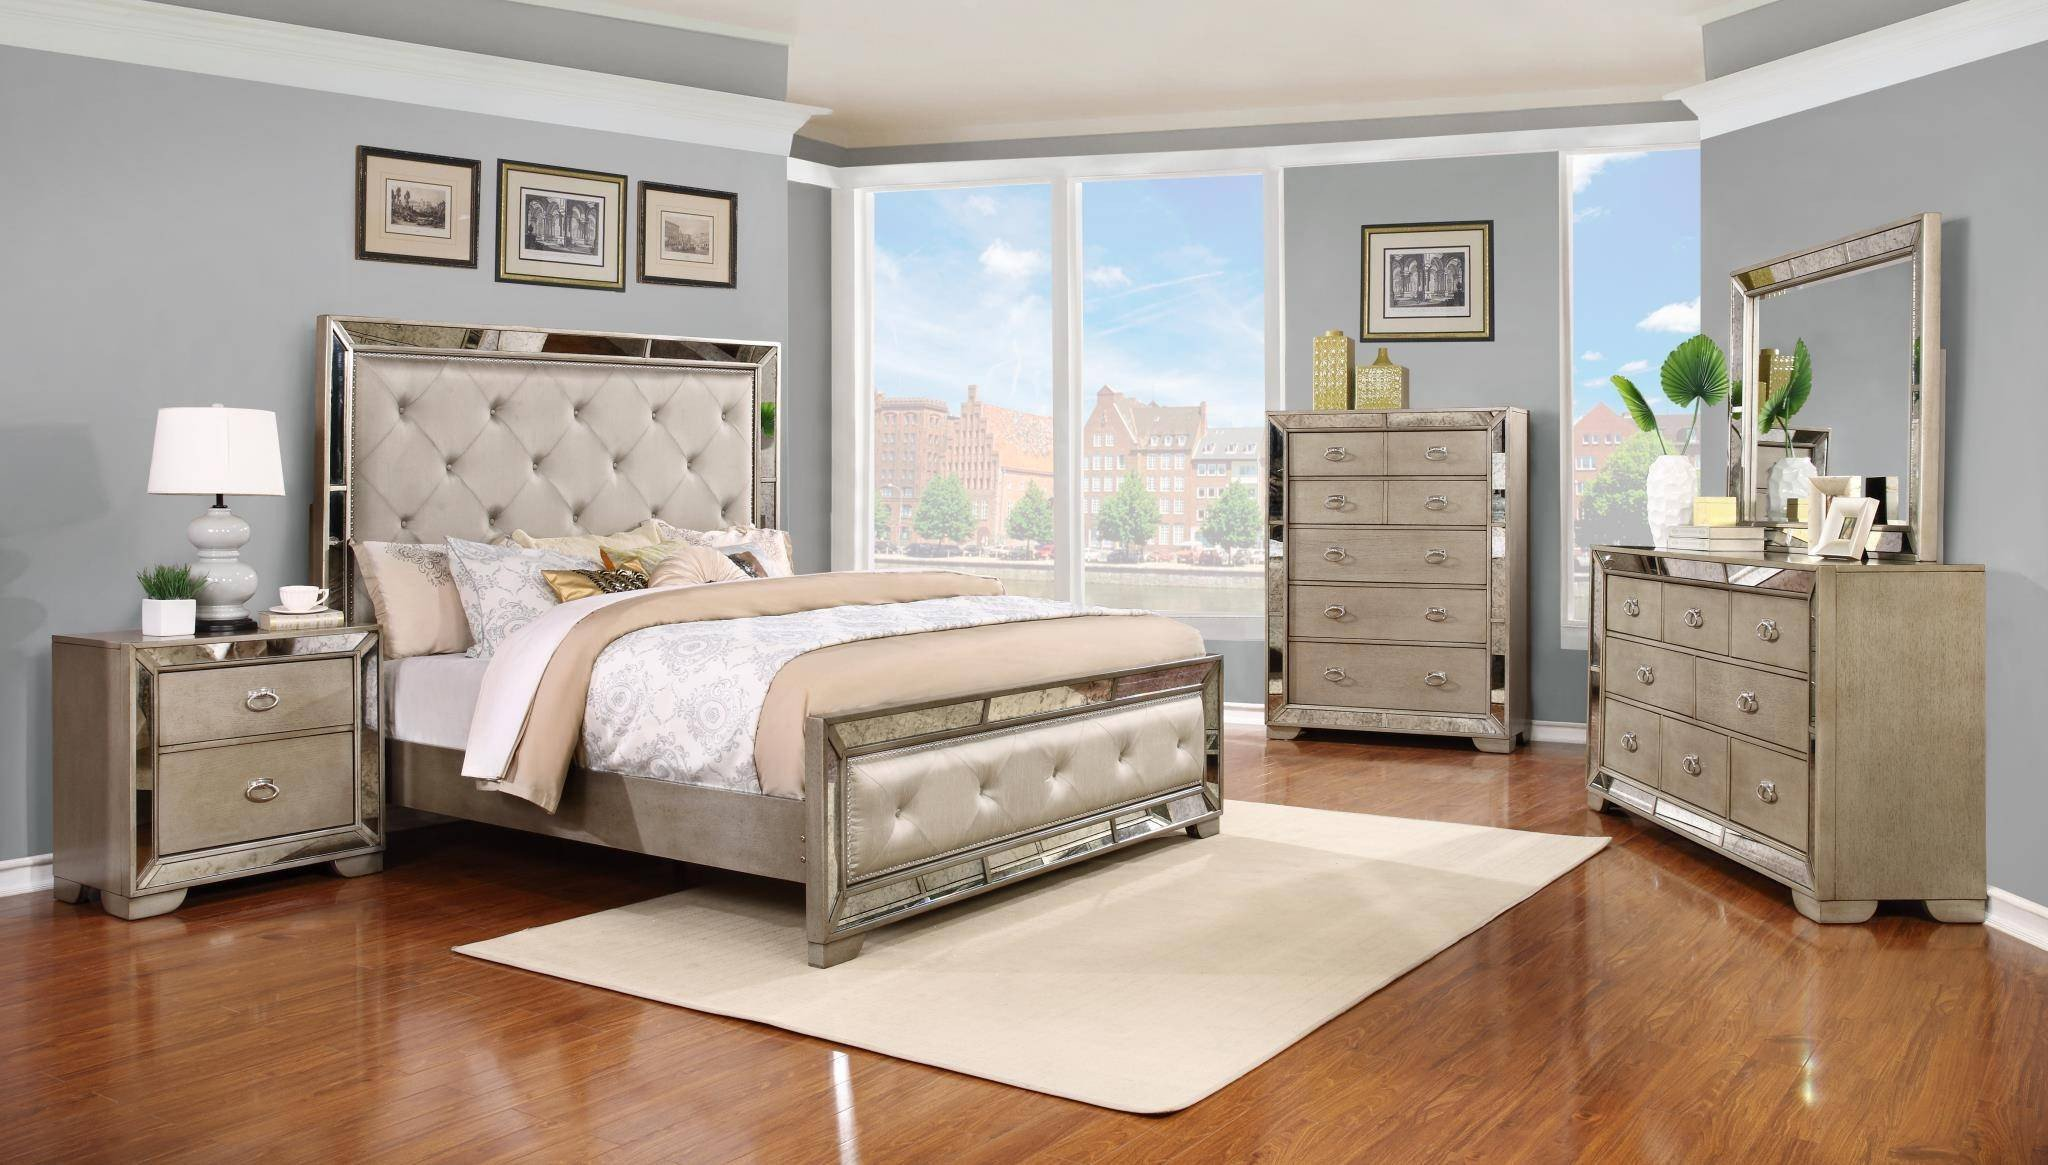 Tufted Queen Bedroom Set Best Of soflex Lilyanna Diamond Tufted Headboard Queen Bedroom Set